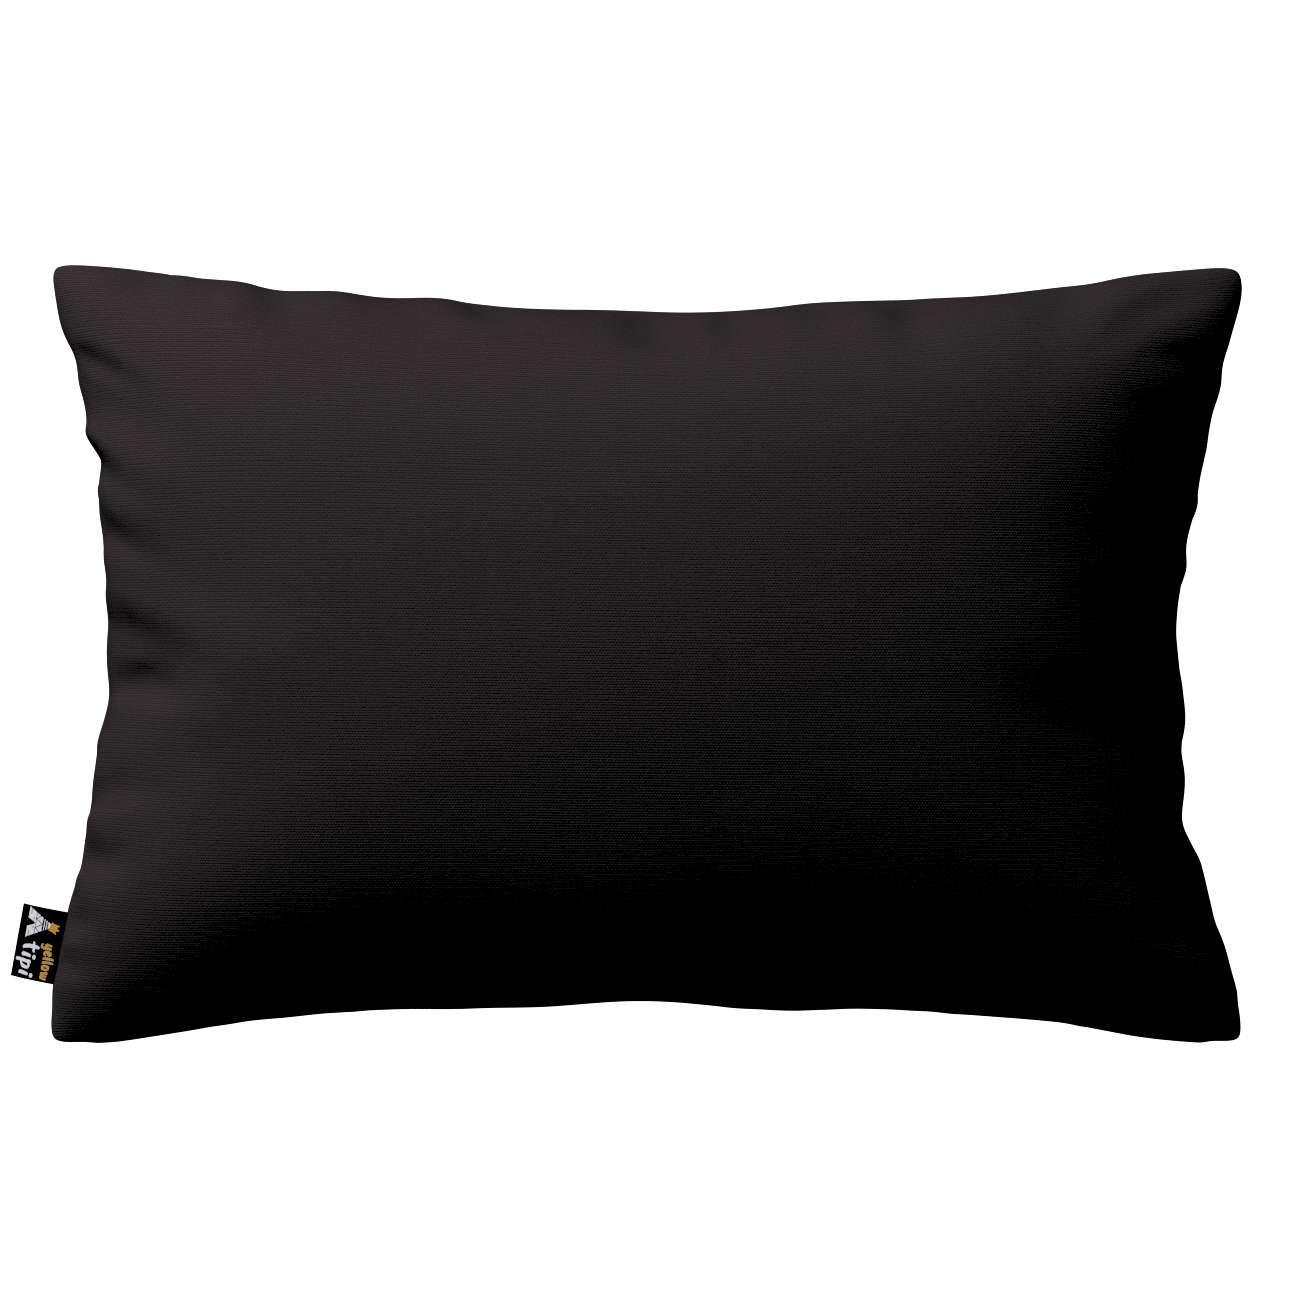 Milly rectangular cushion cover in collection Cotton Story, fabric: 702-09